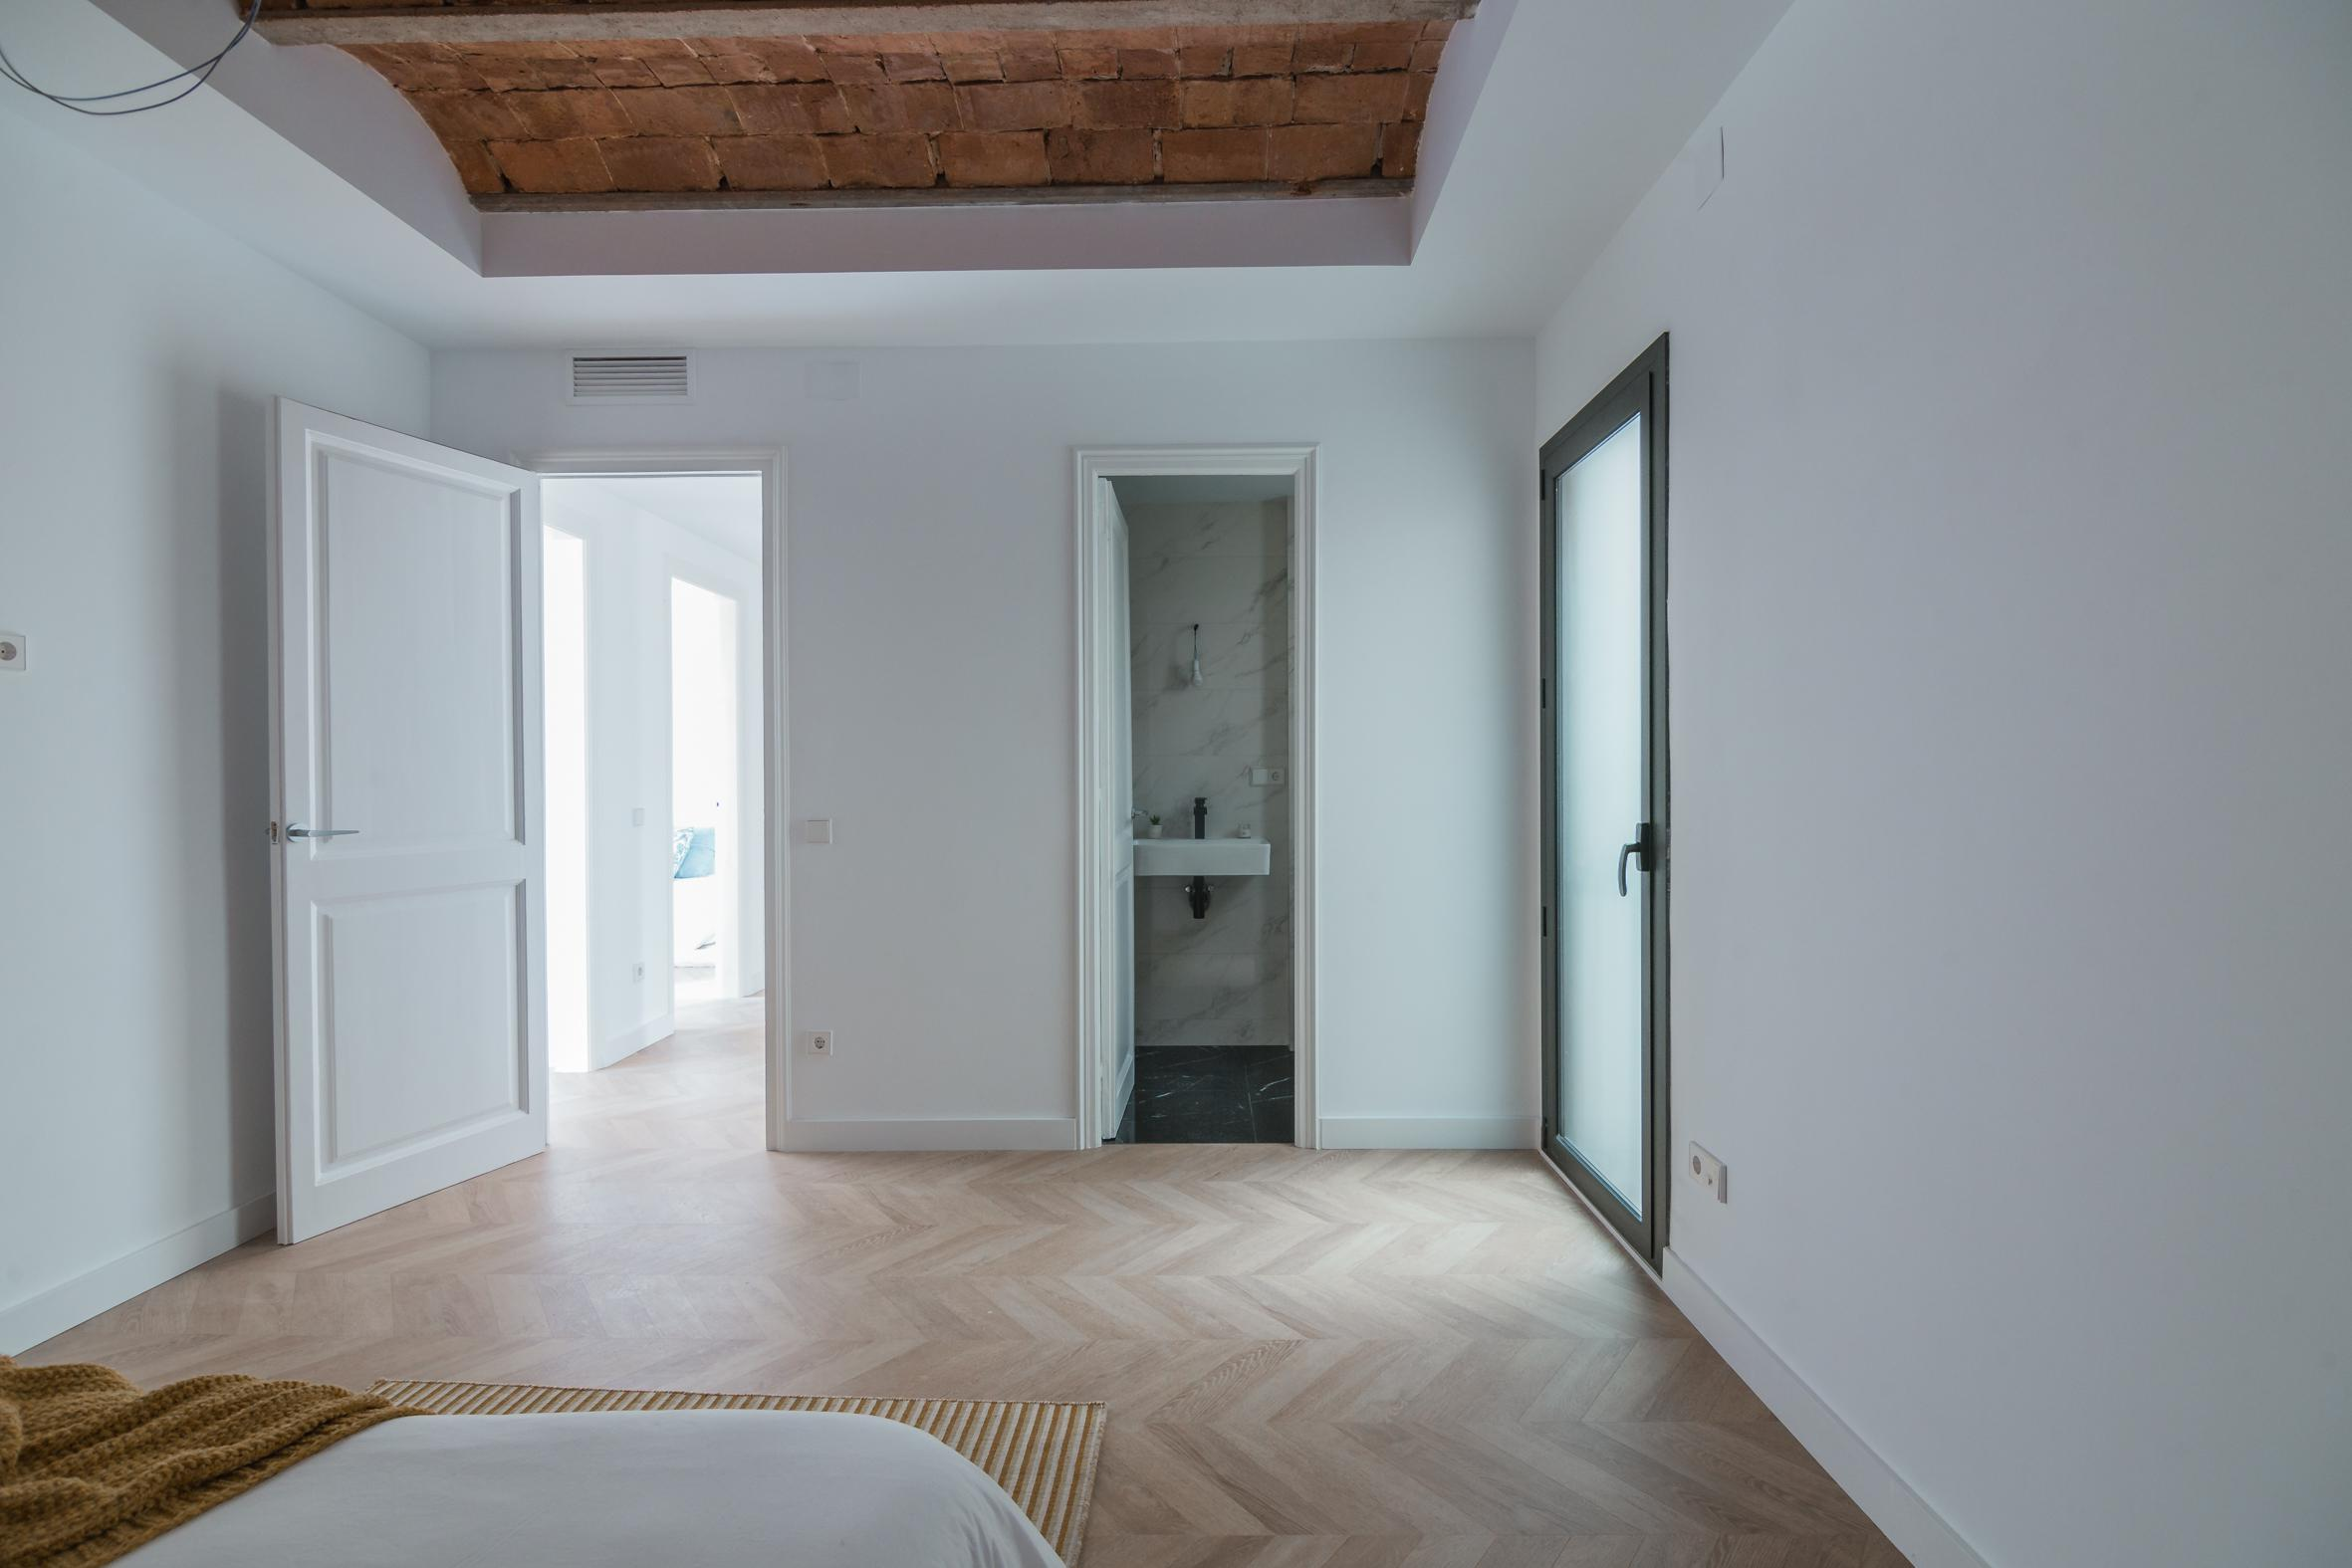 244010 Flat for sale in Ciutat Vella, Barri Gótic 19